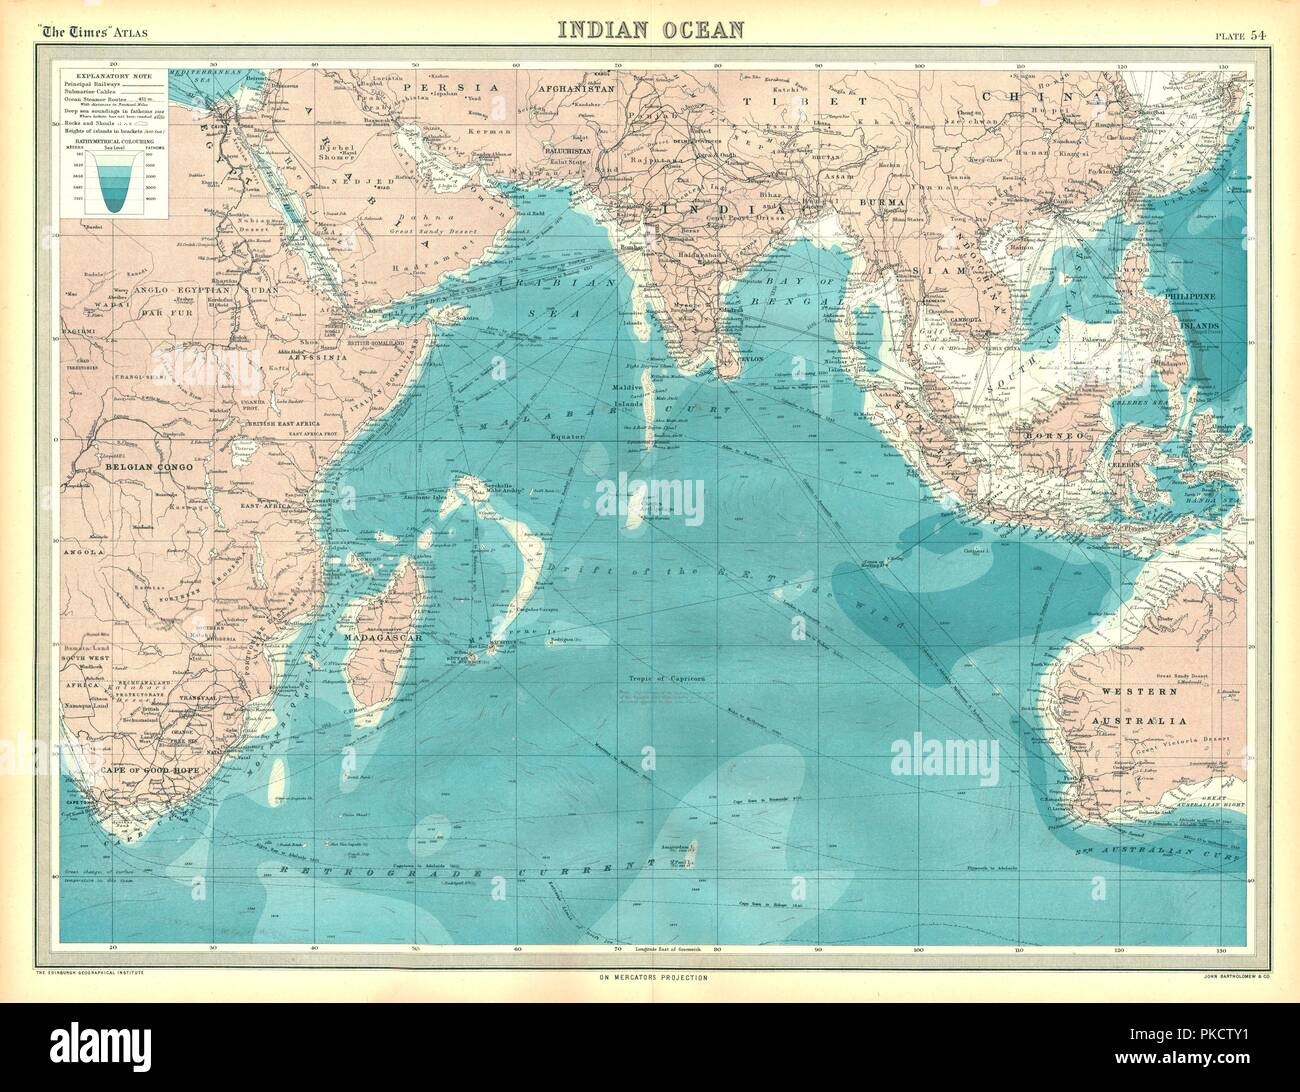 Map of the Indian Ocean. Artist: Unknown Stock Photo ... Map Indian Ocean on world map, red sea, mediterranean sea, comoros map, cape of good hope map, pacific ocean, pacific map, christmas island, java map, india map, black sea, persian gulf map, south america map, arctic ocean, arabian sea map, world ocean, silk road, asia map, caspian sea, equator map, middle east map, bay of bengal map, caribbean sea, iran map, arabian sea, latin america map, ukraine map, australia map, south asia, africa map, china map, korean peninsula map, bay of bengal, atlantic ocean, persian gulf, southern ocean, south china sea,